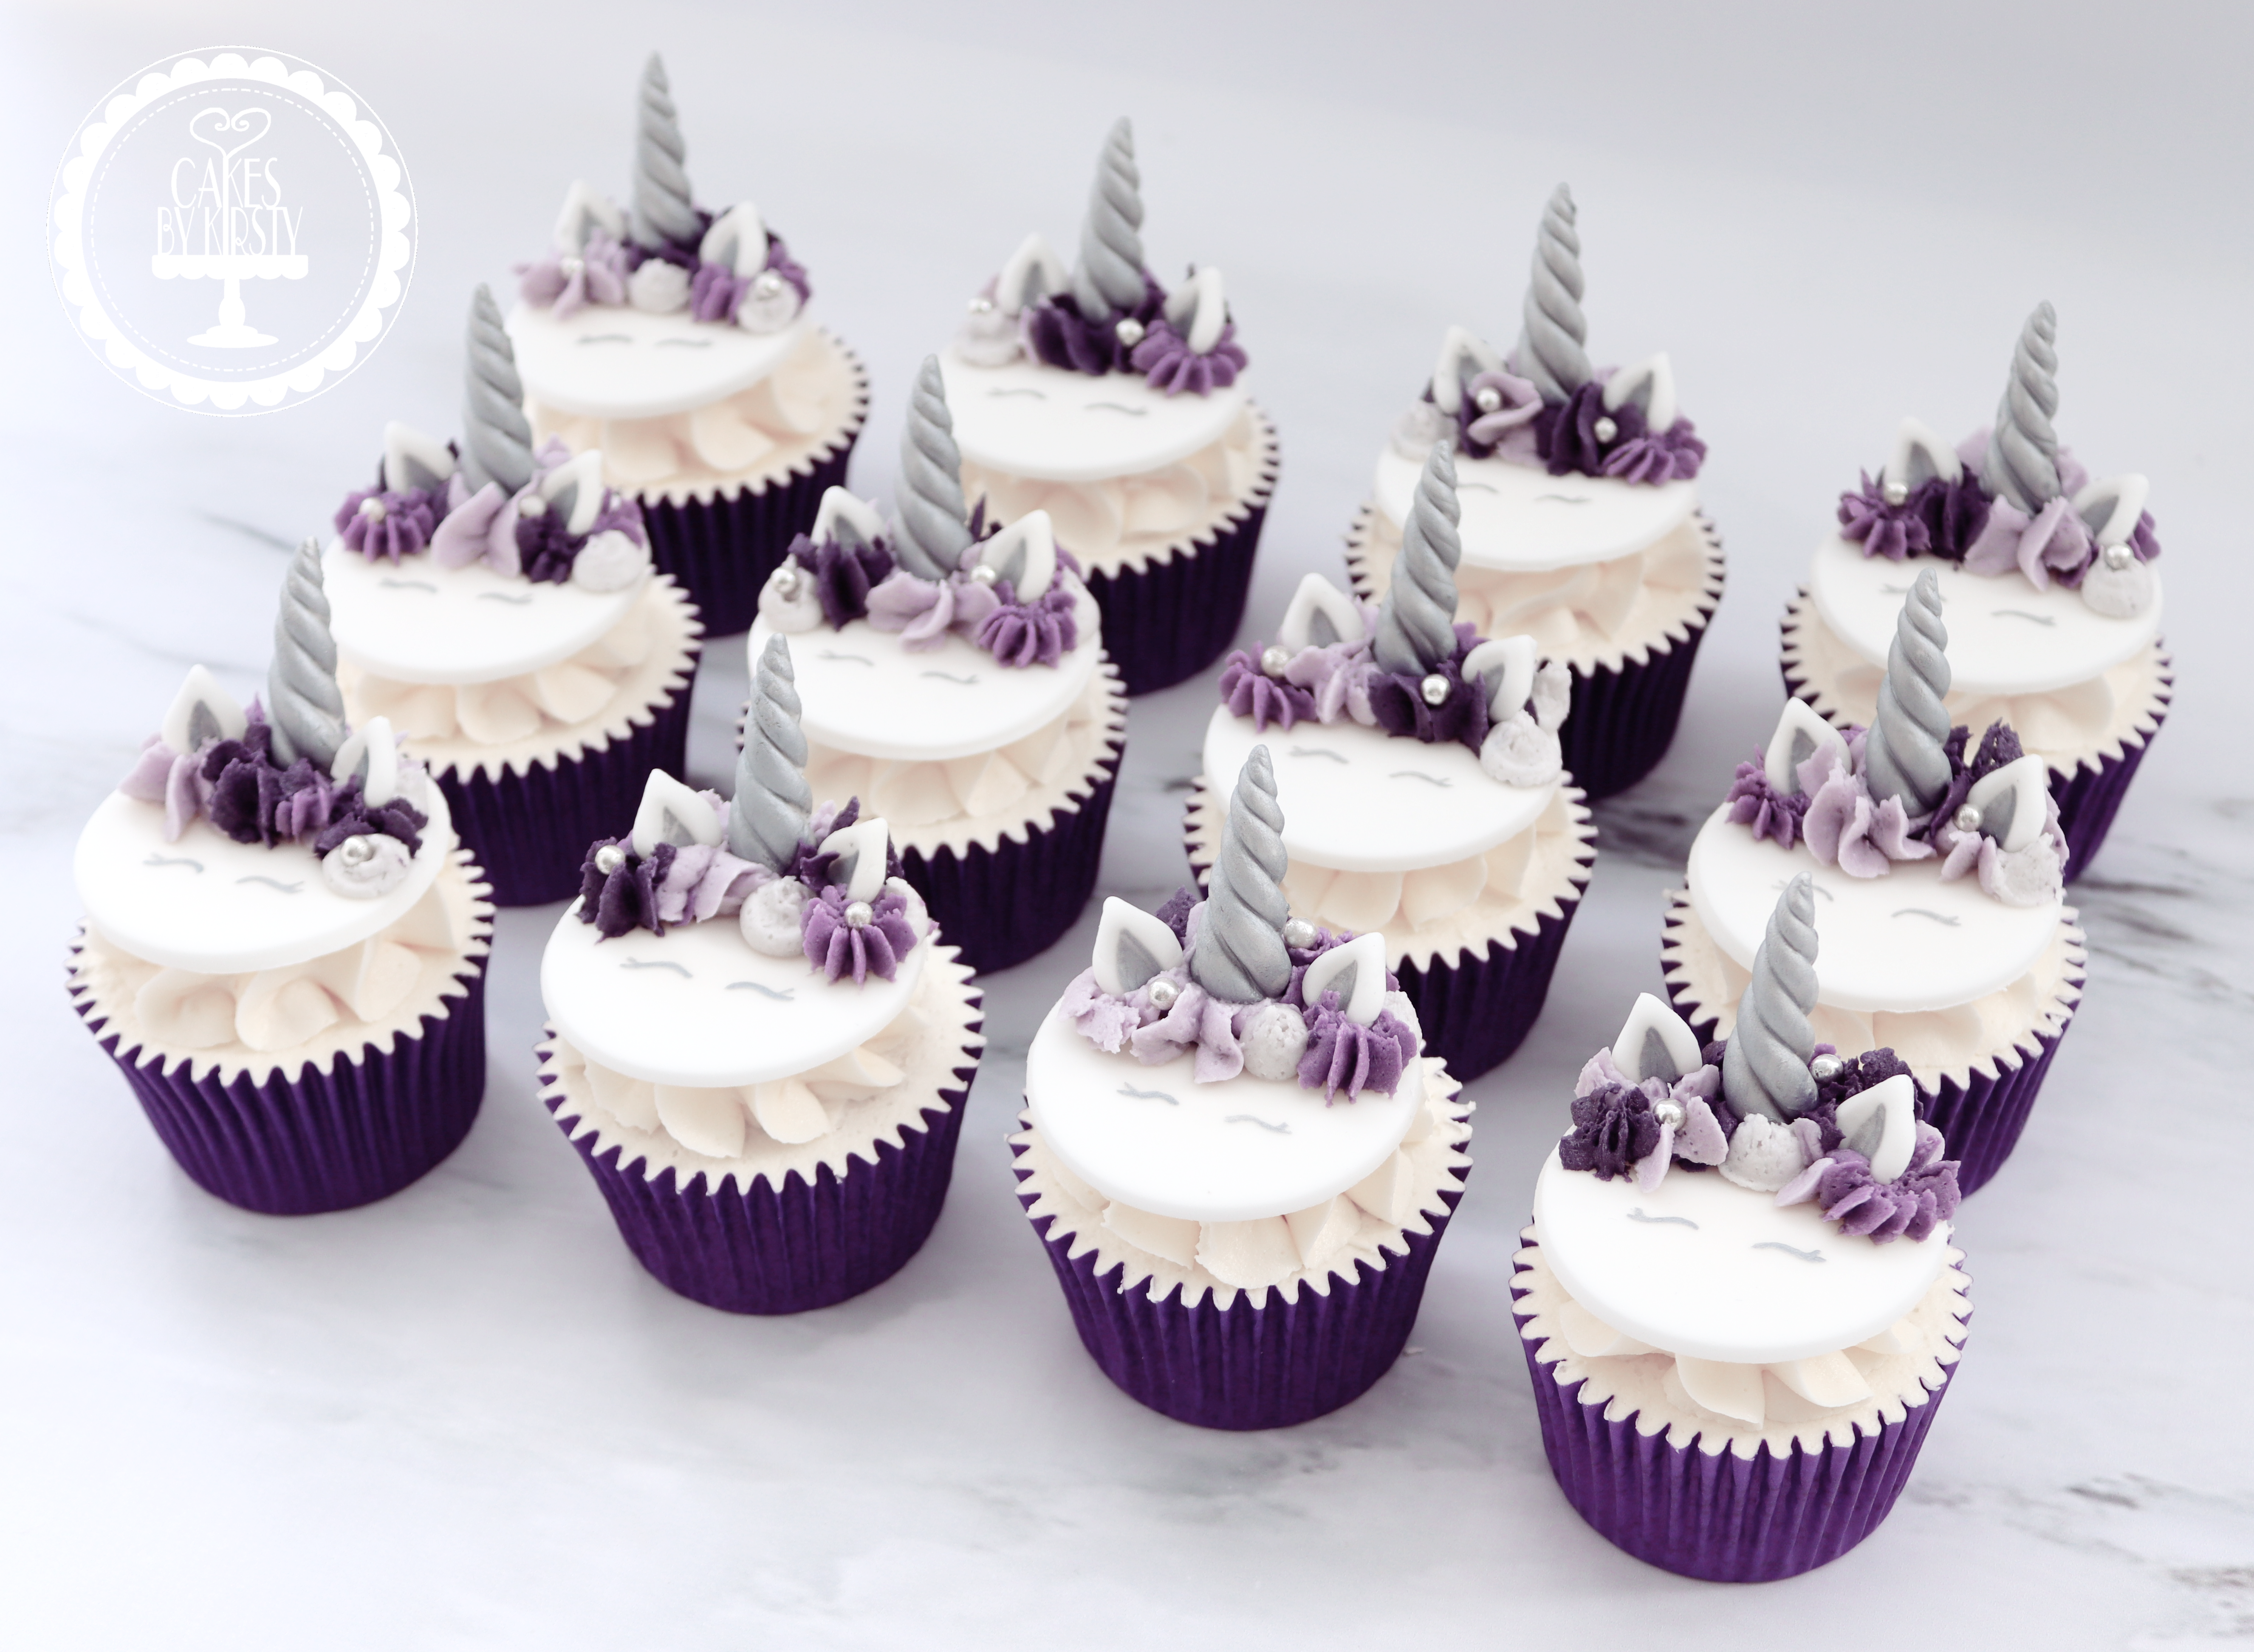 20190712 - Purple Unicorn Cupcakes